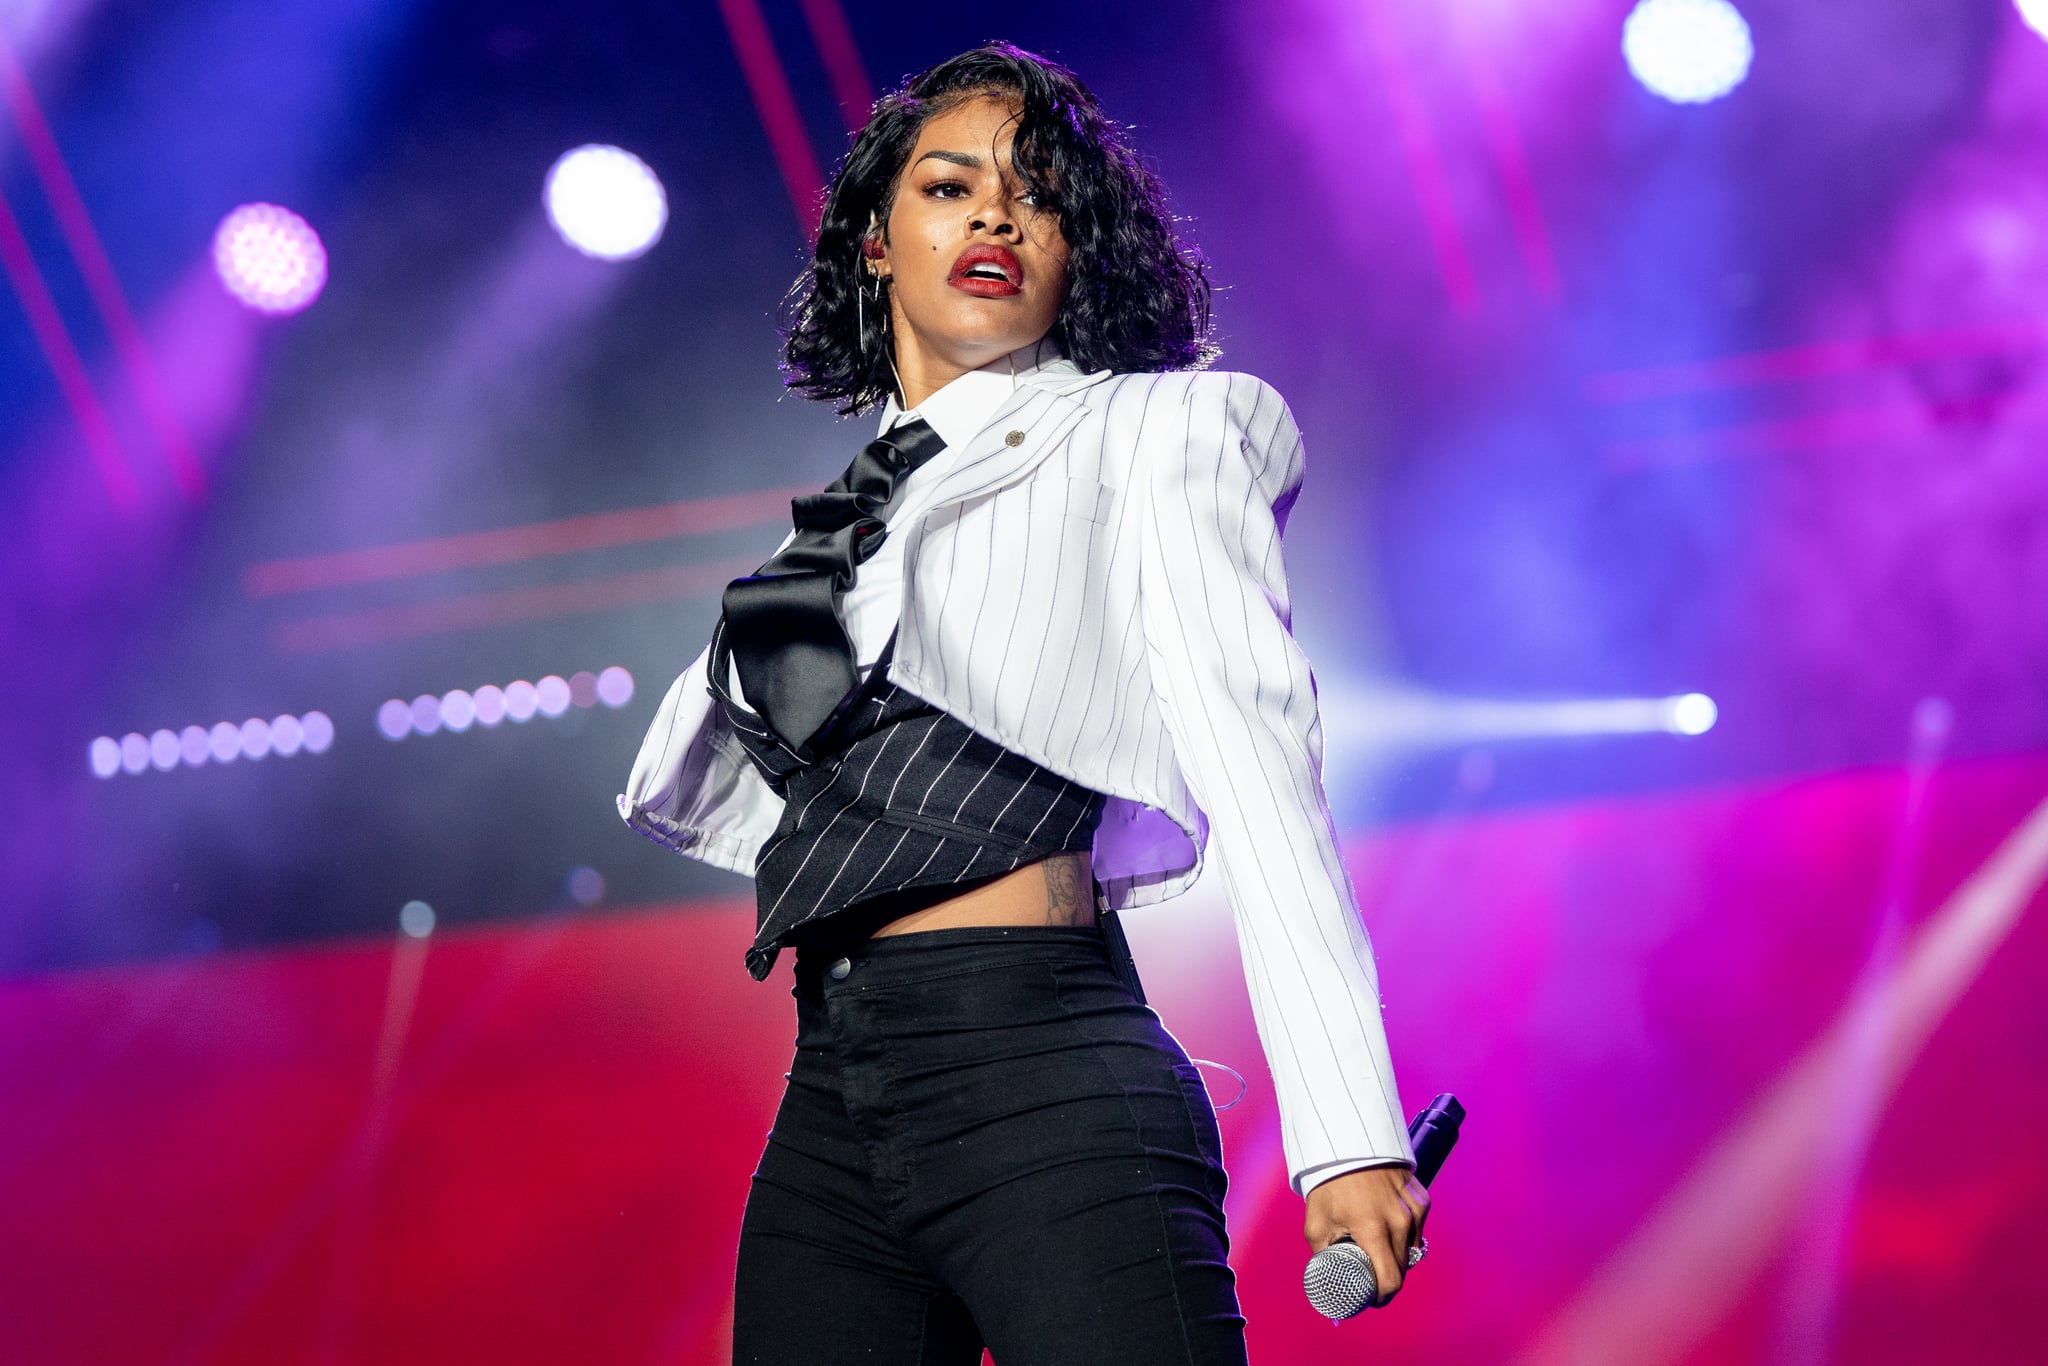 Teyana Taylor Clarifies Her Decision To Leave Music - See Her Video